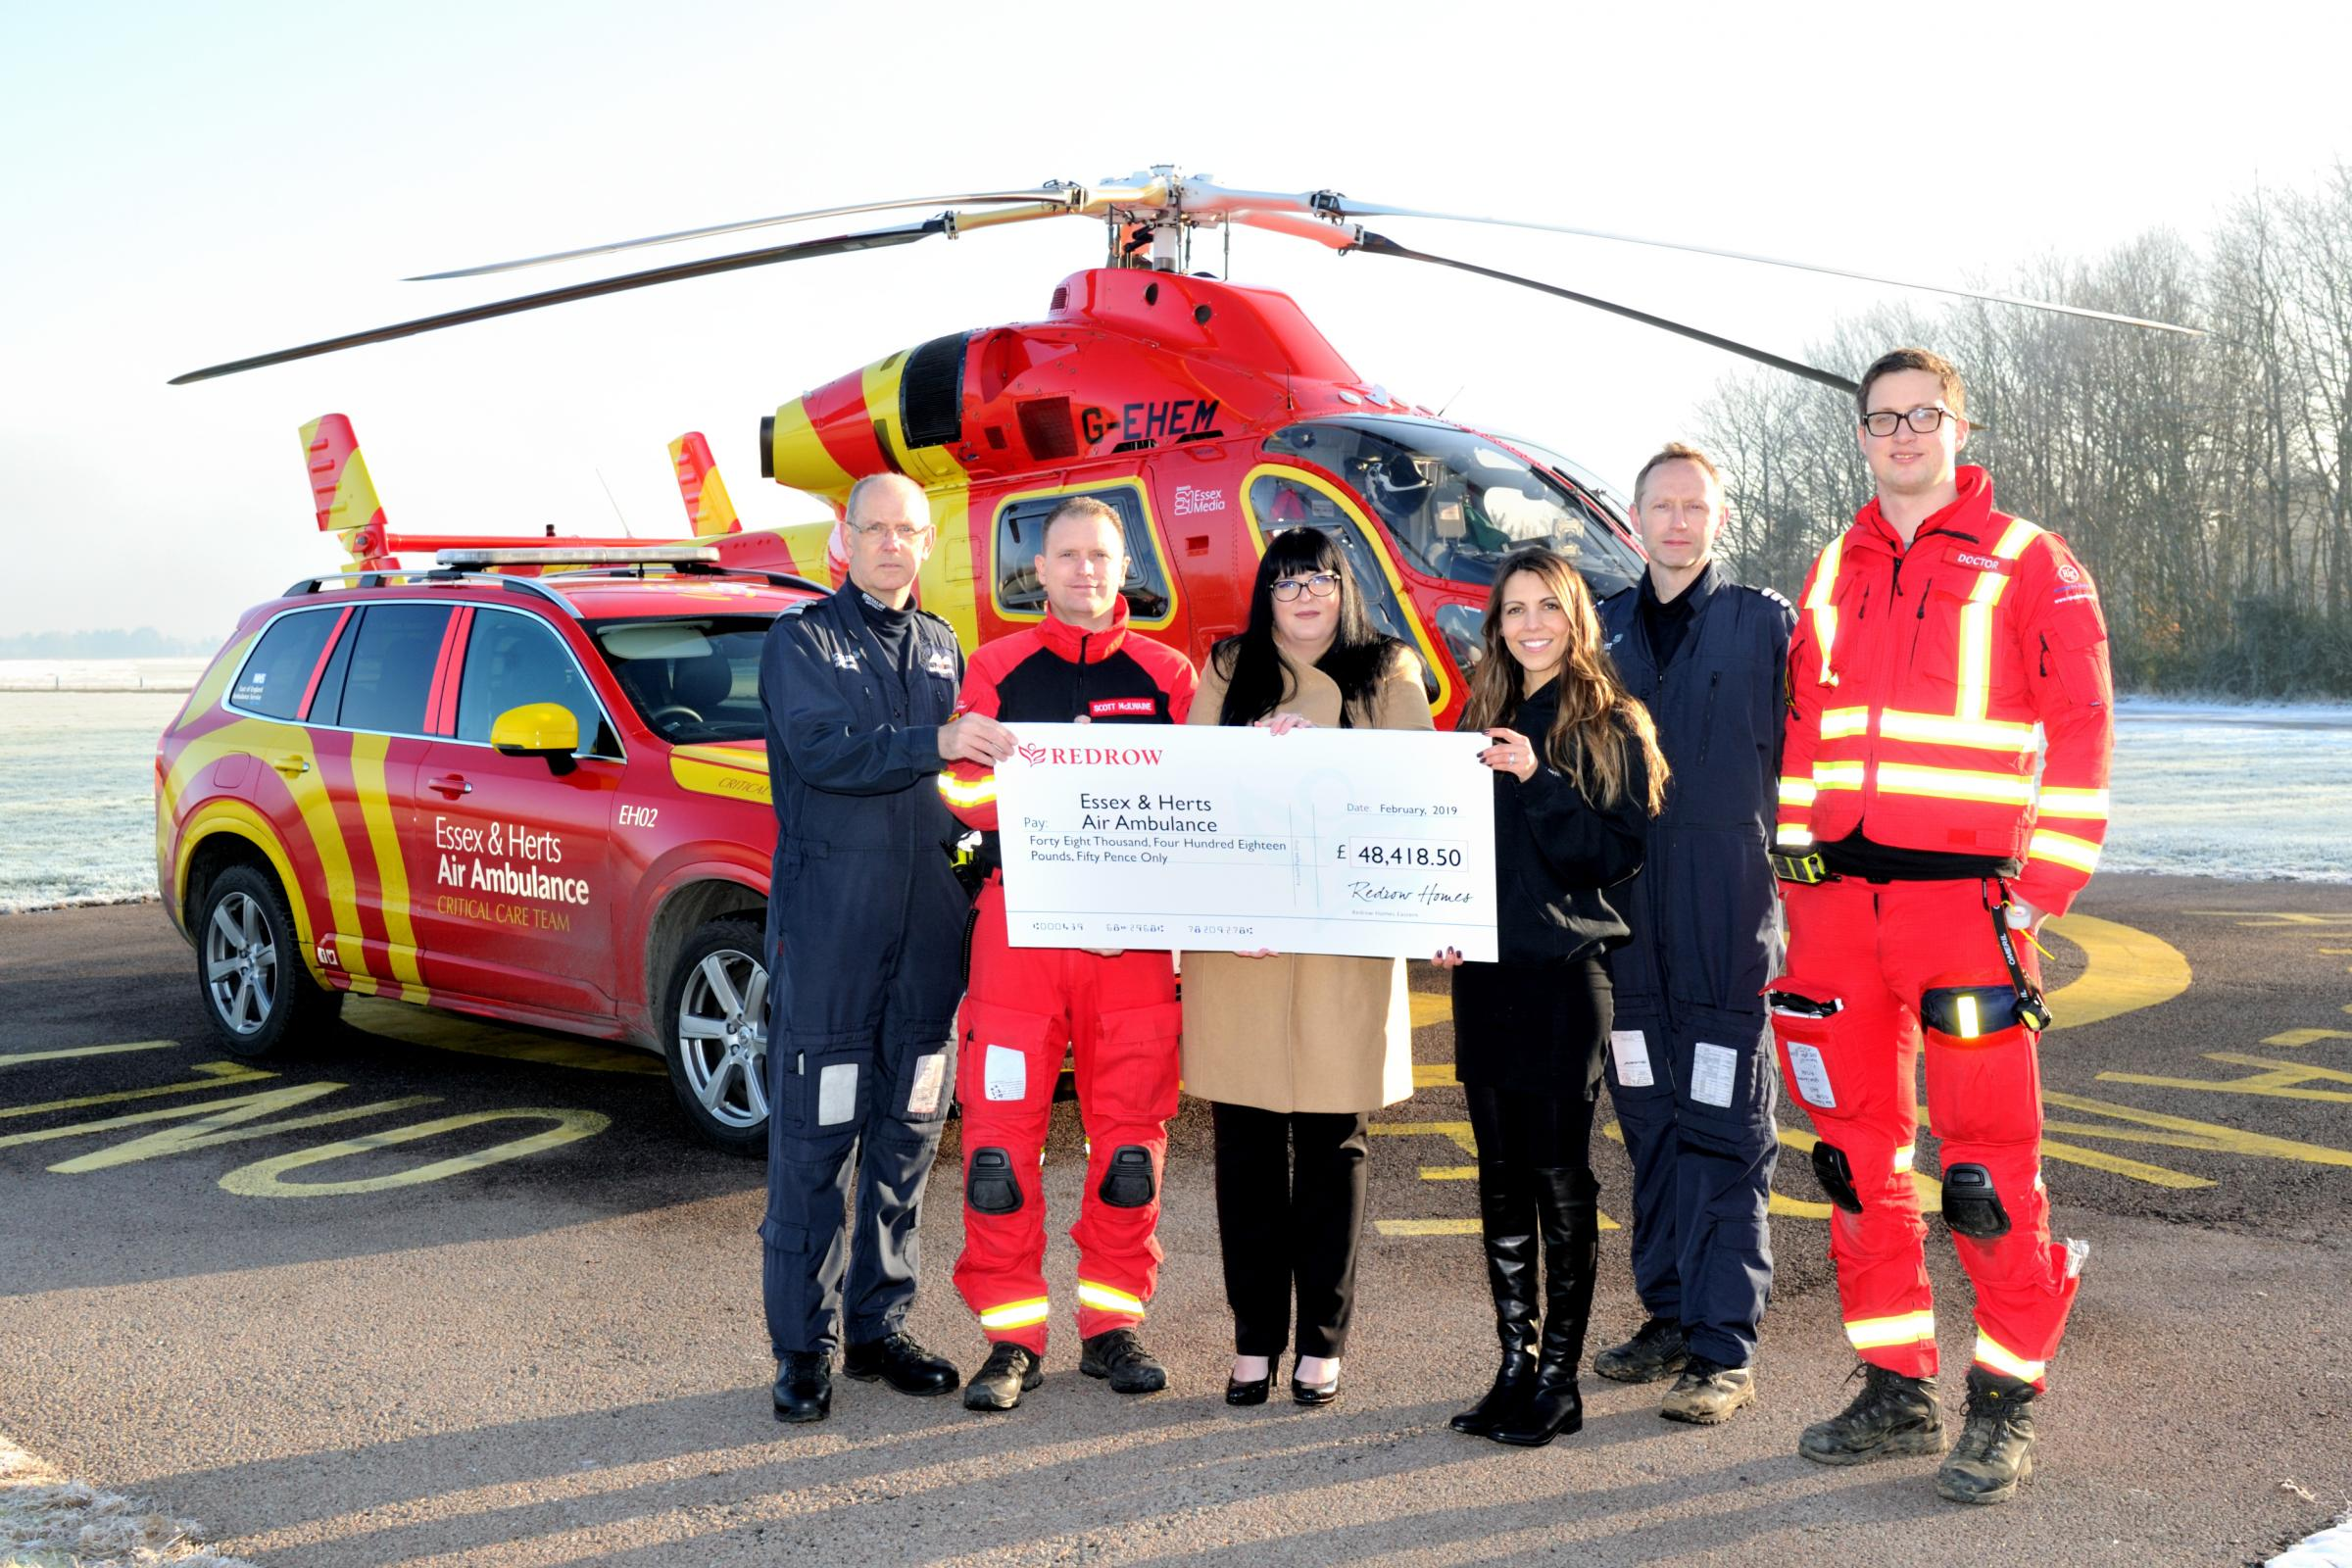 Donation - Redrow Eastern raised £48,418 for the Essex and Herts Air Ambulance